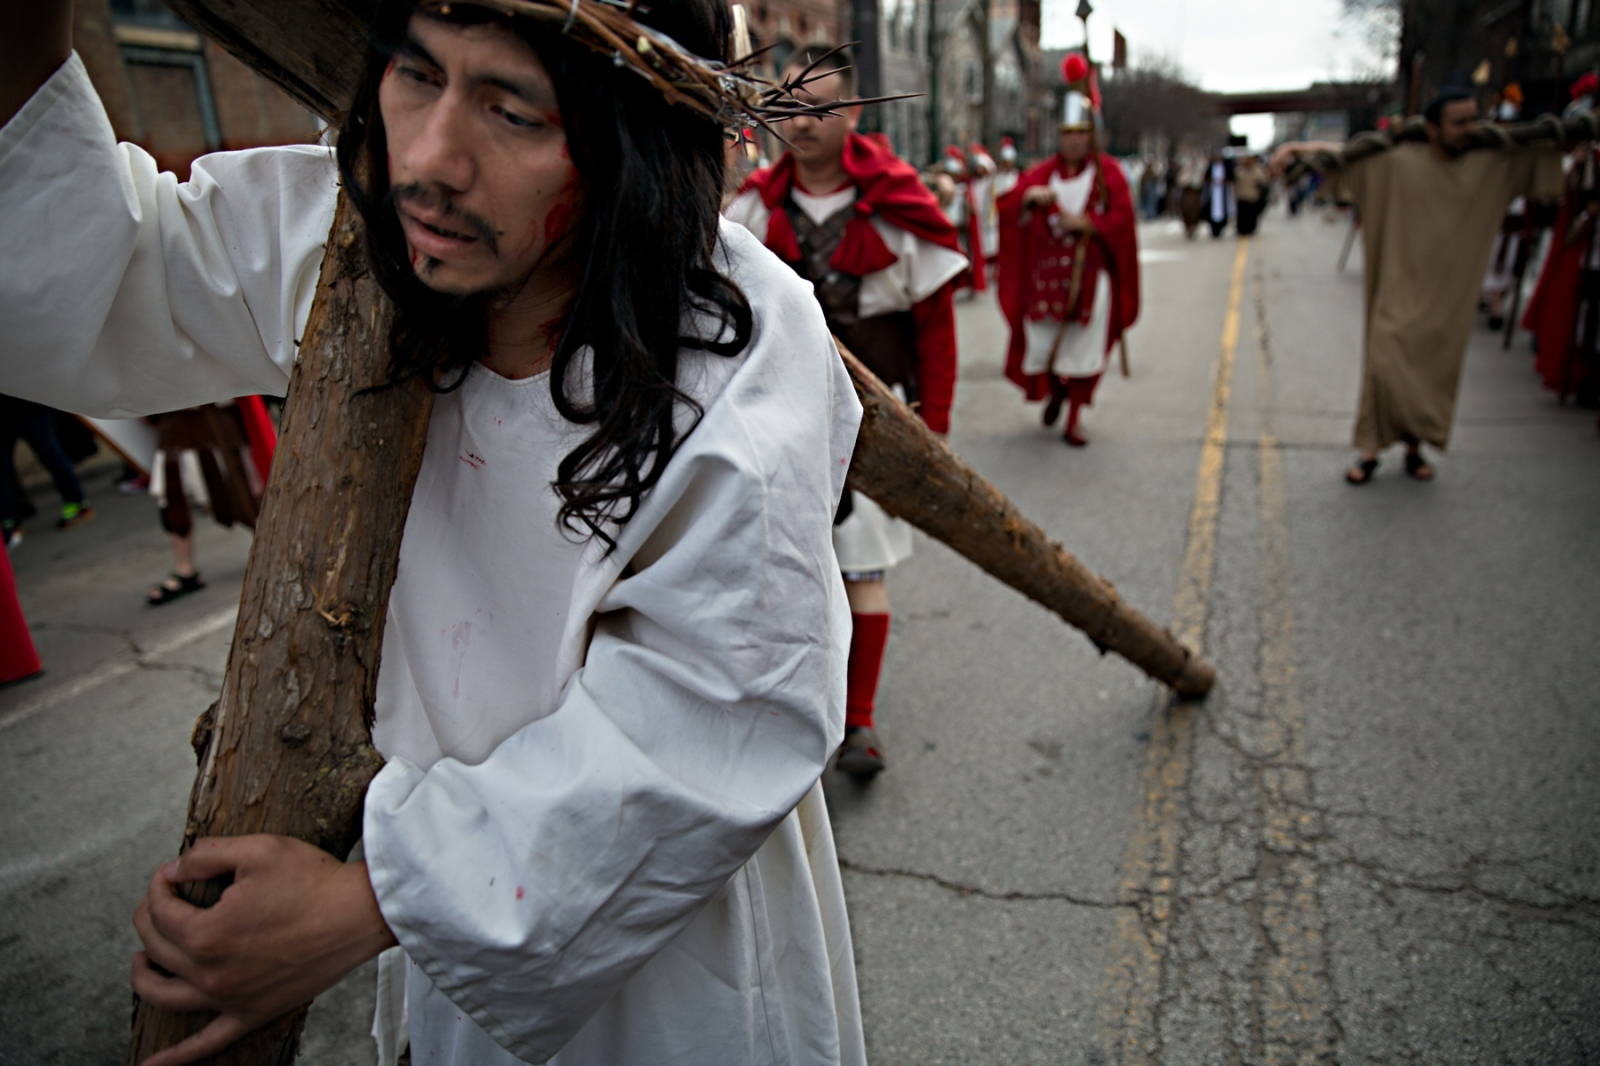 Art and Documentary Photography - Loading ViaCrucis-5619-Edit.jpg